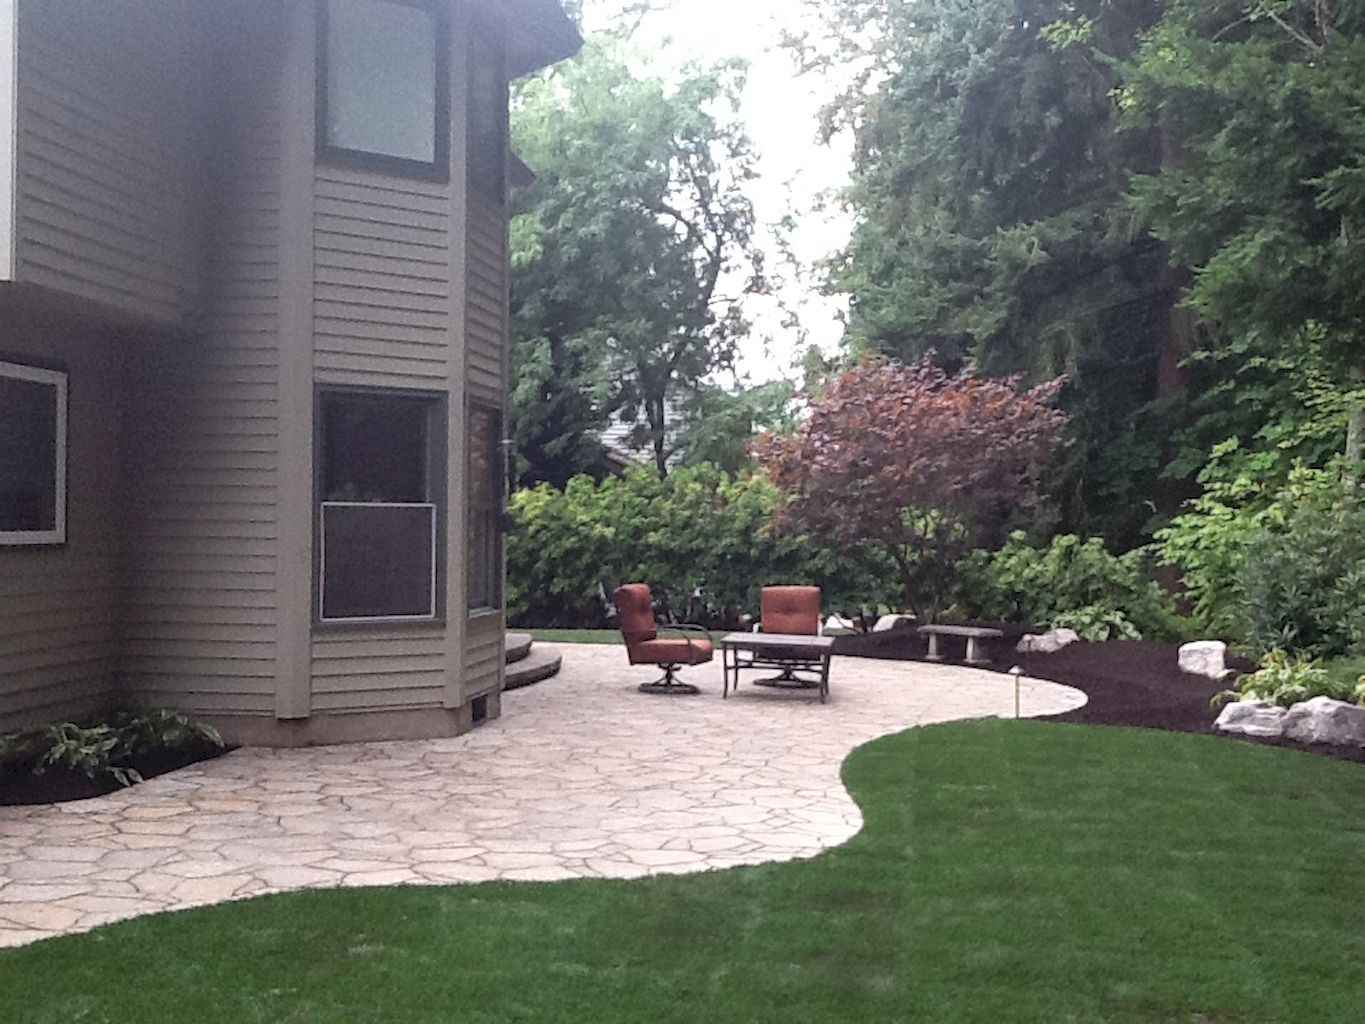 60 Awesome Small Patio on Budget Design Ideas